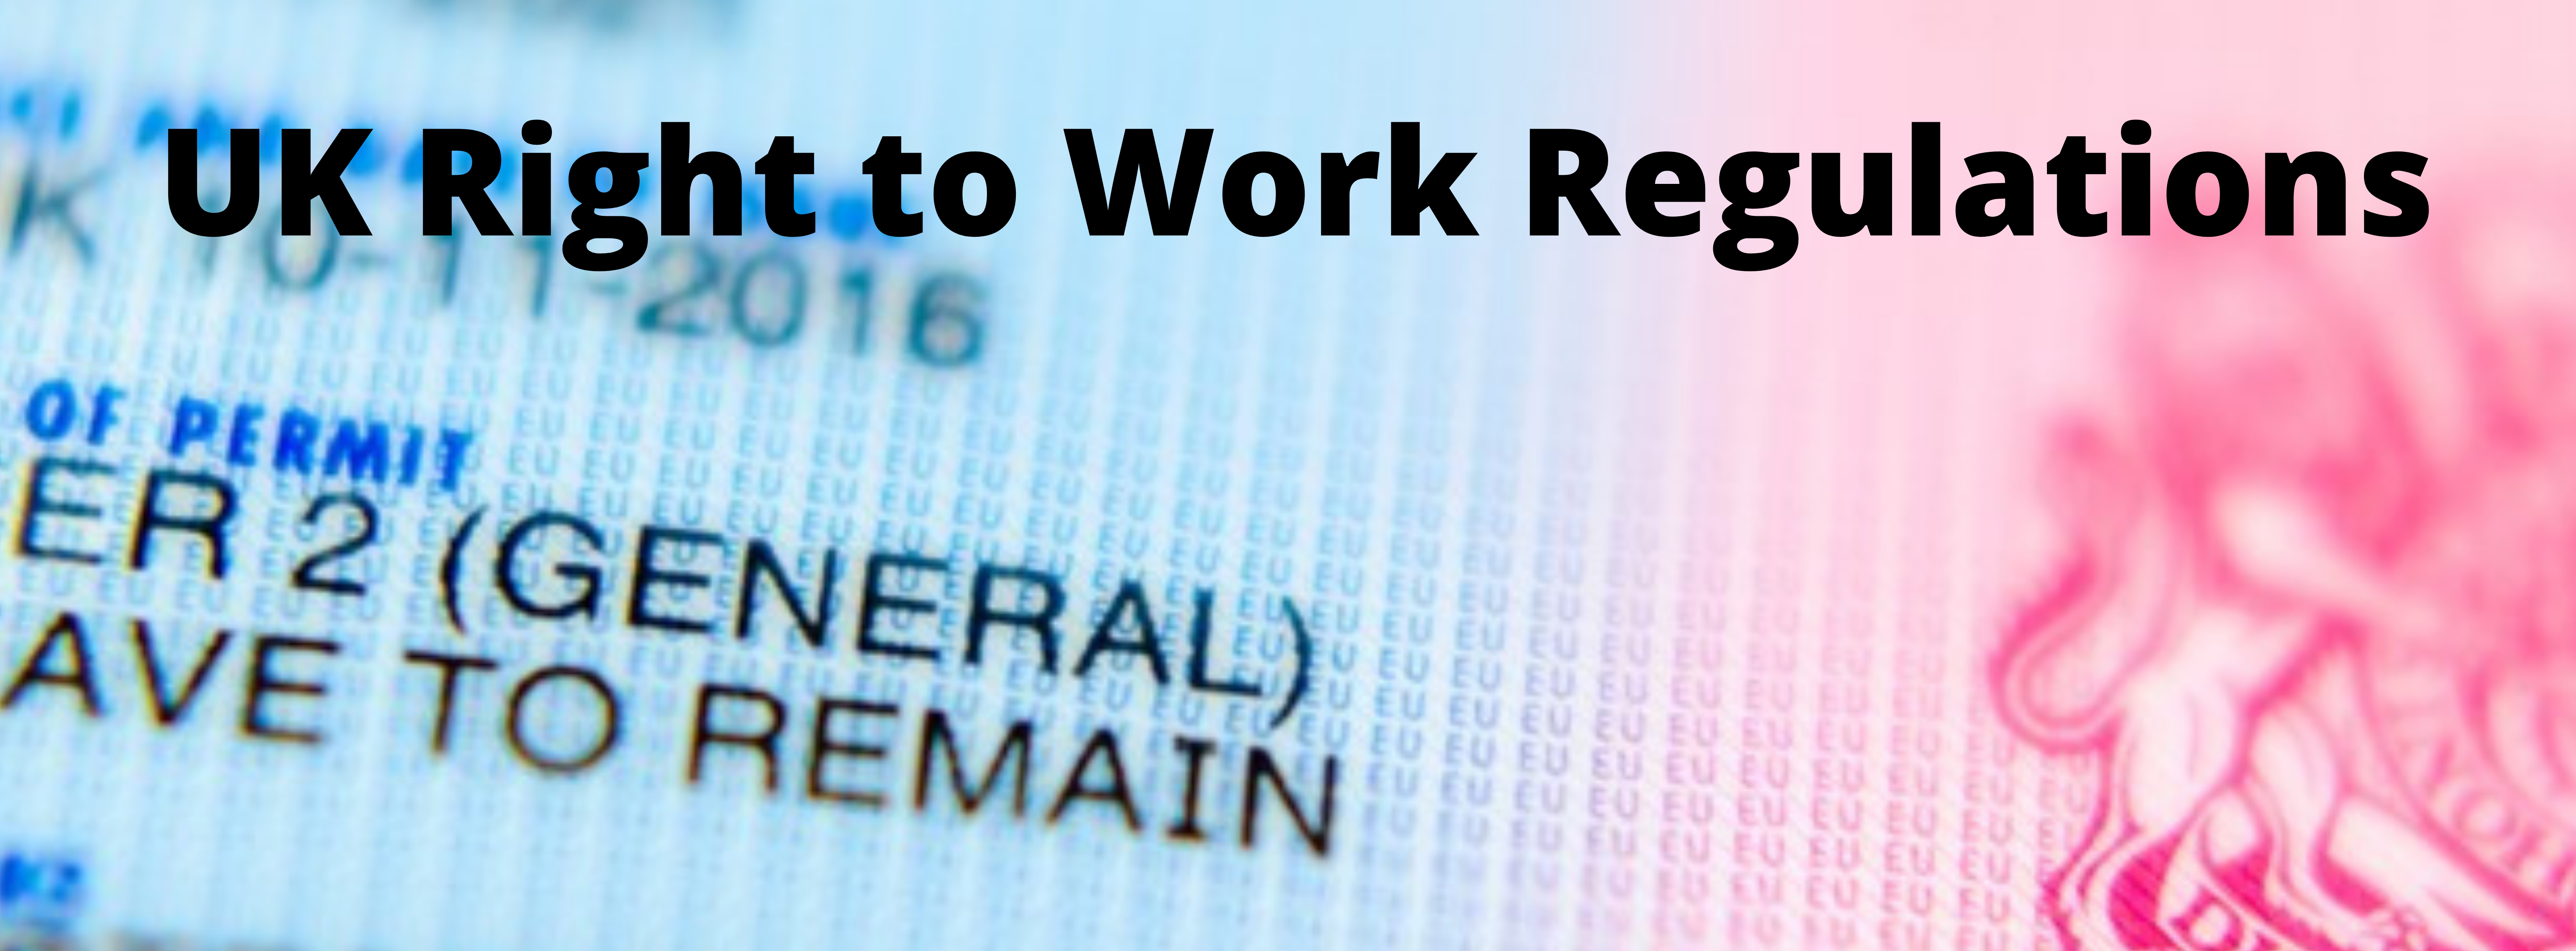 The Right to Work Regulations